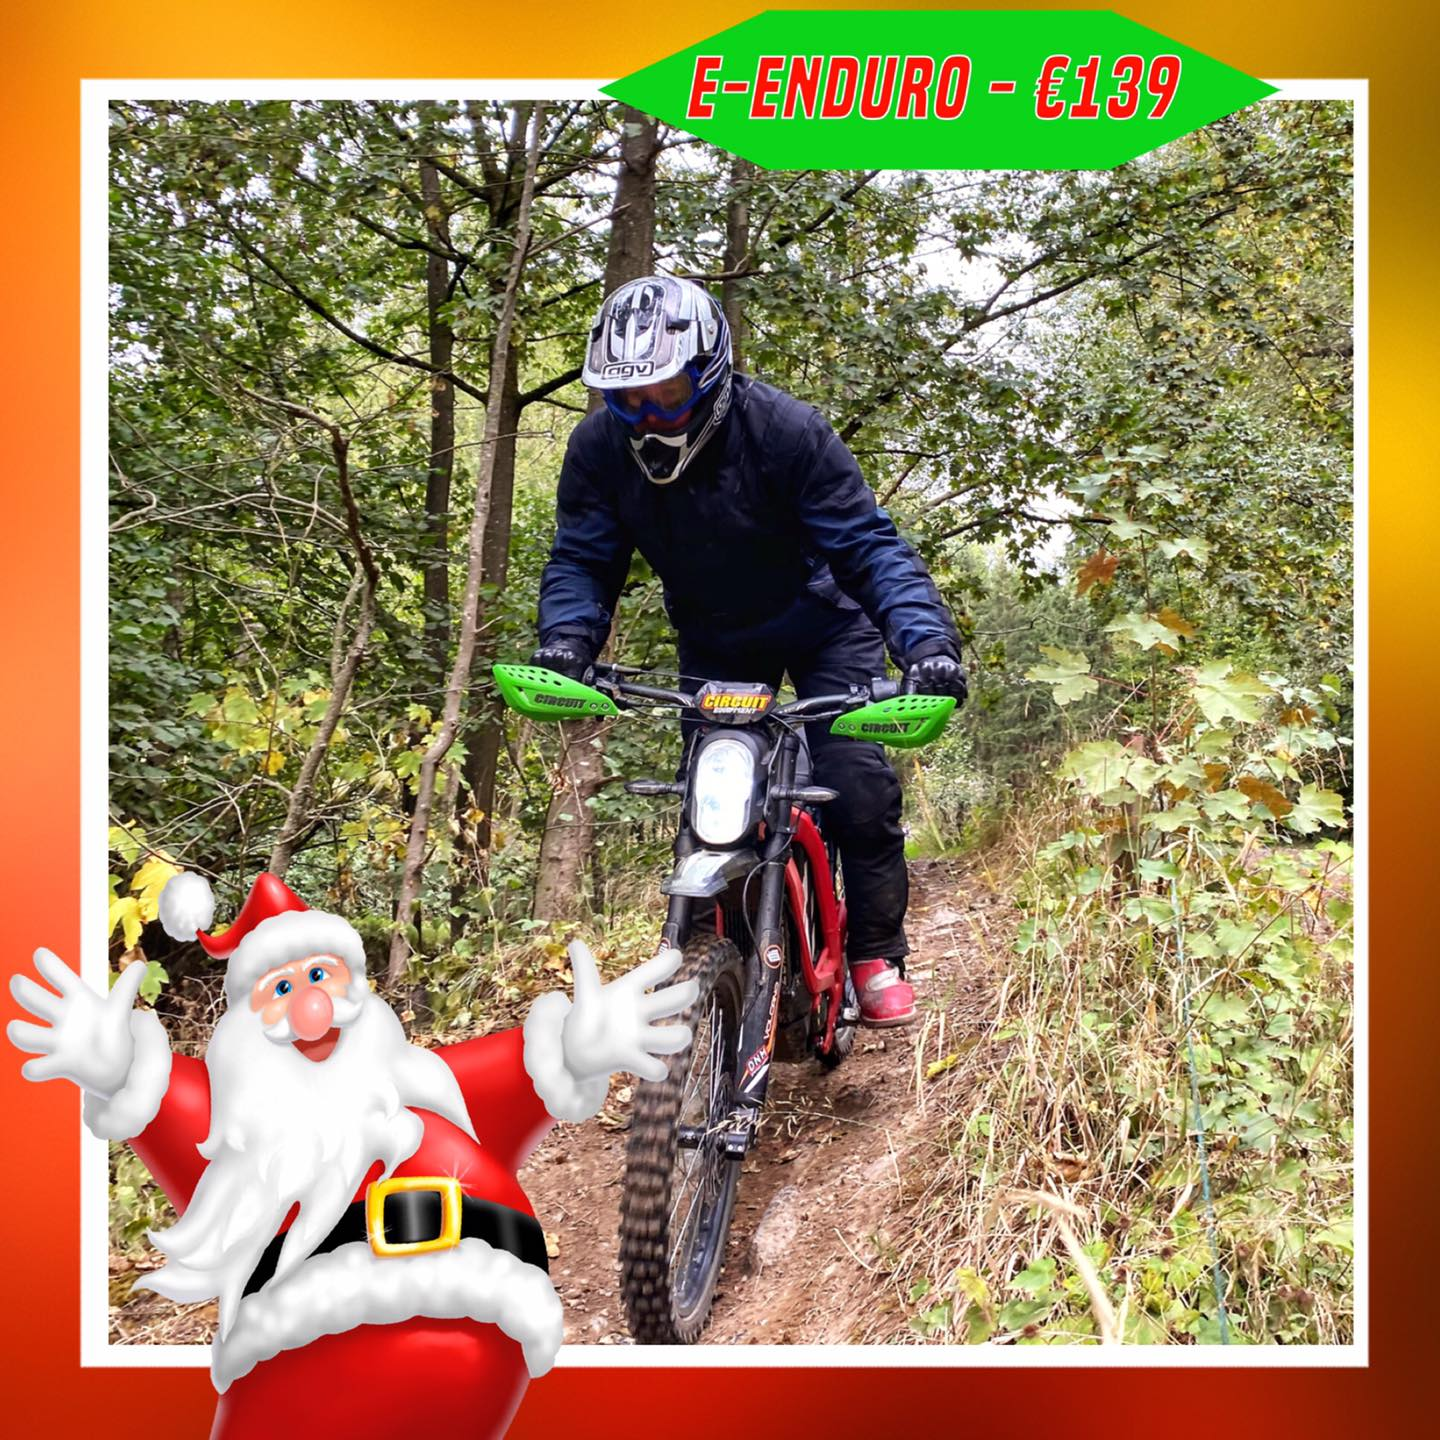 Kerst-initiaties Bilstain Endurofun 45 Surron